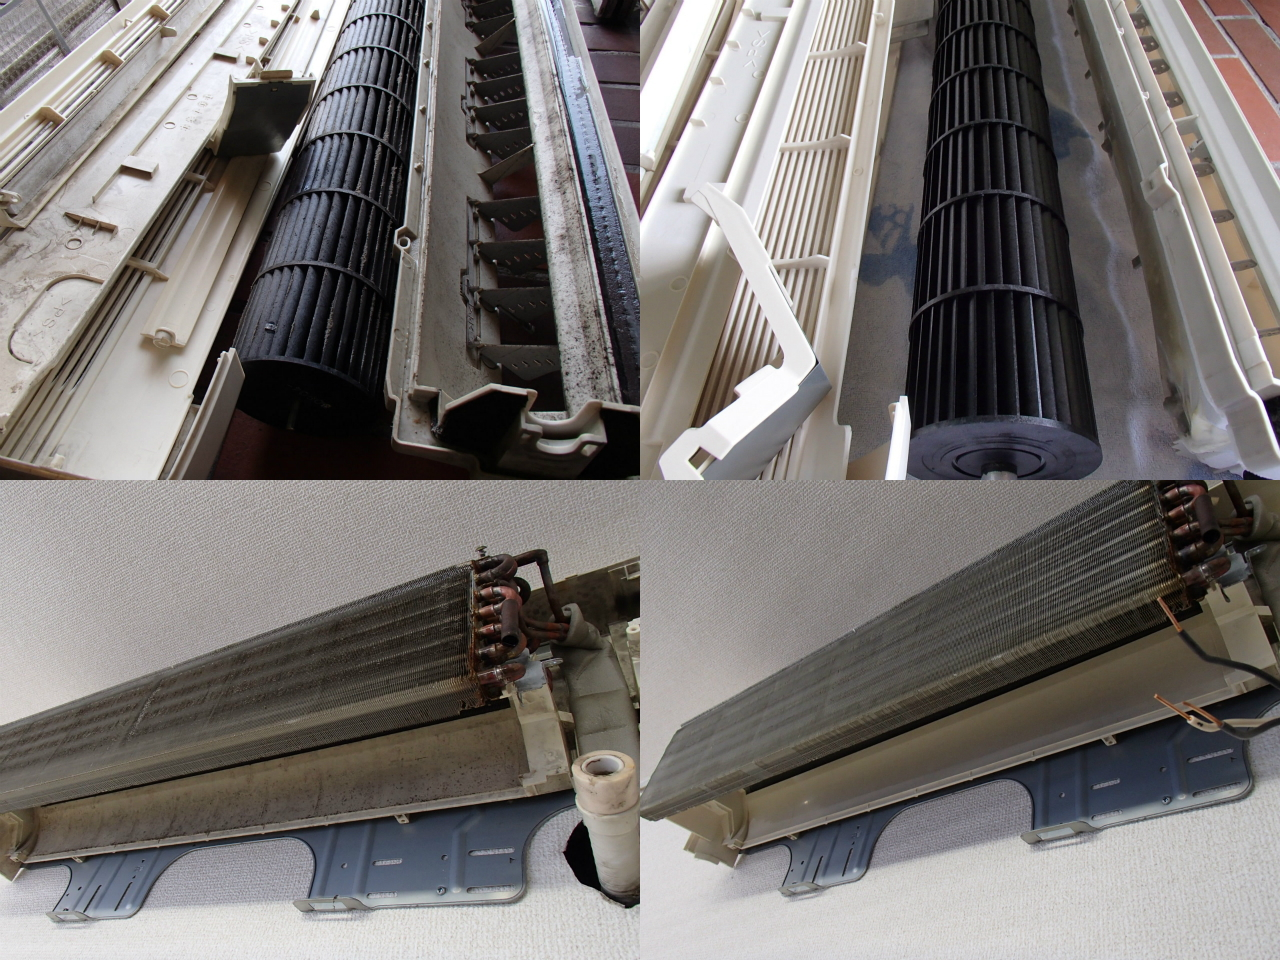 http://ajras.net/images/120828-aircon2.jpg